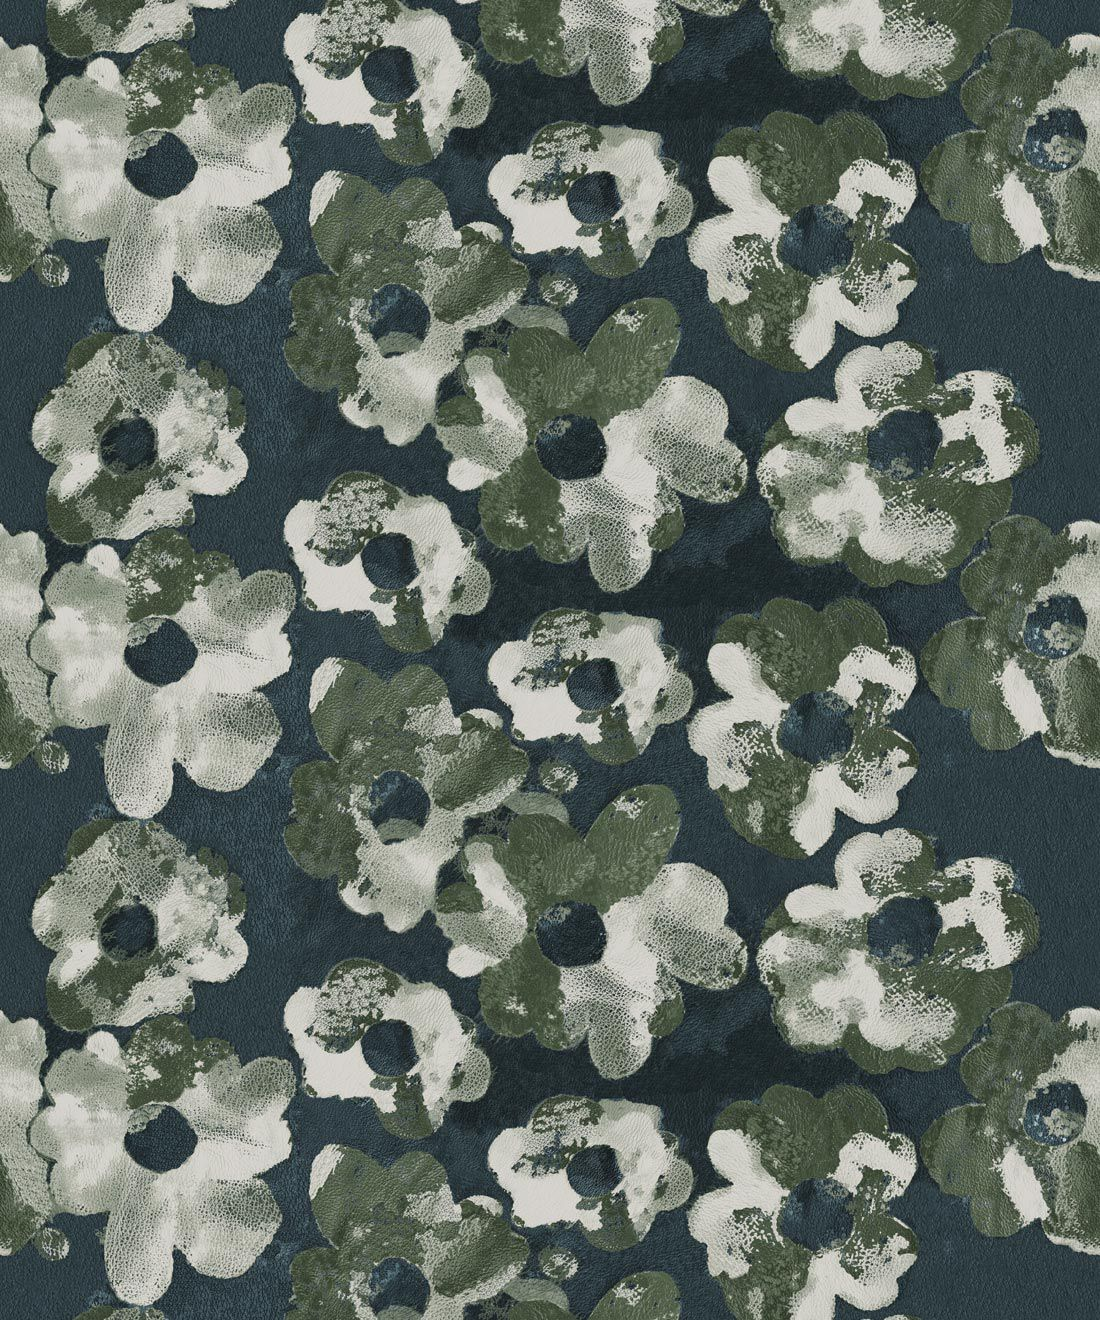 Cherry Blossom Wallpaper Night • Shibori Floral • Night Swatch